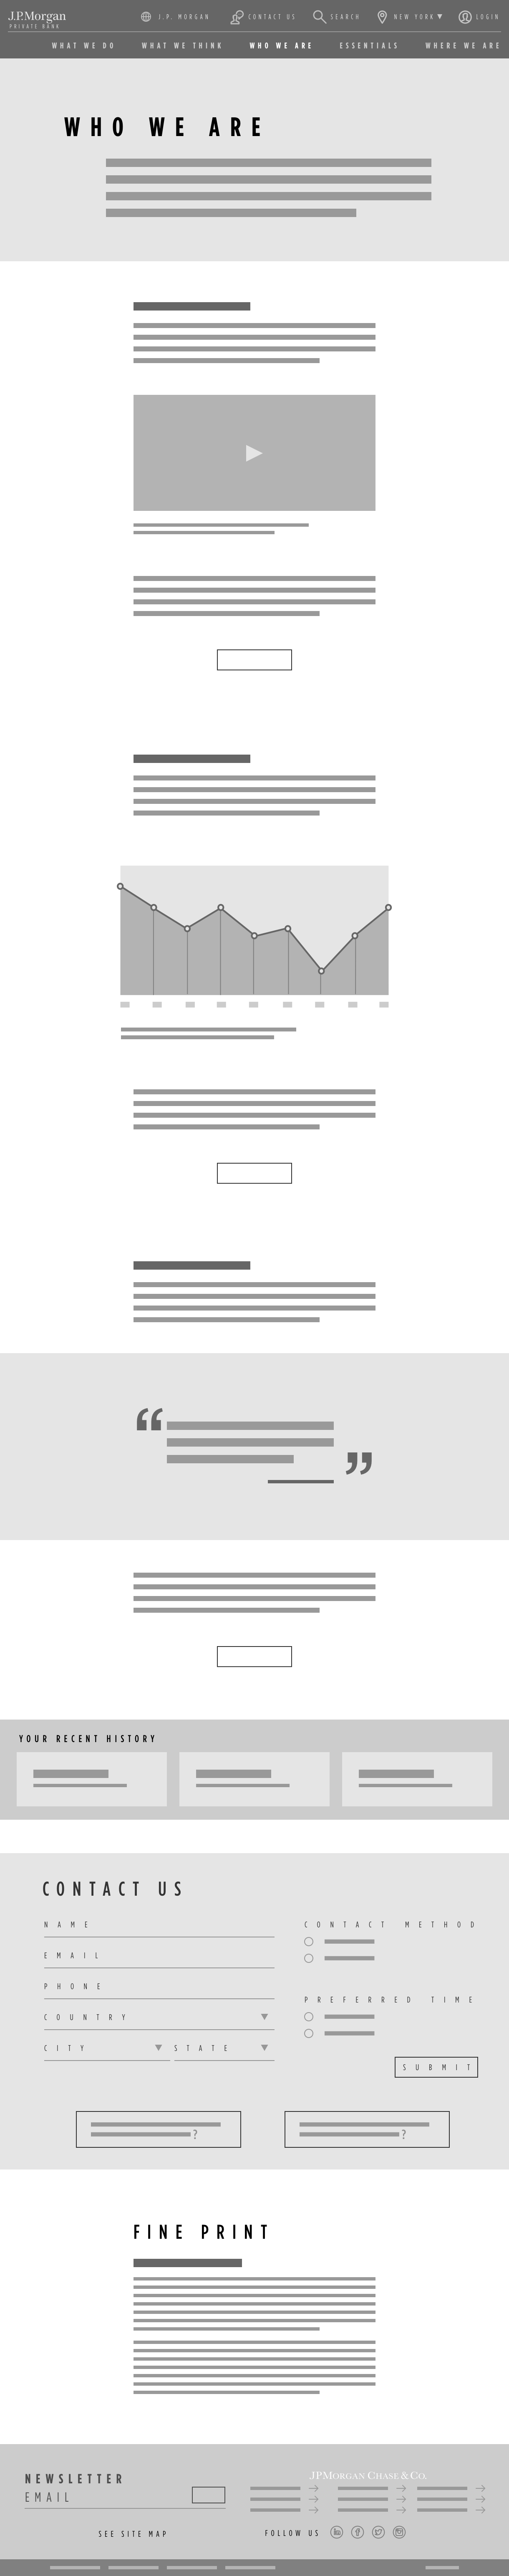 Who We Are_Landing Page Copy